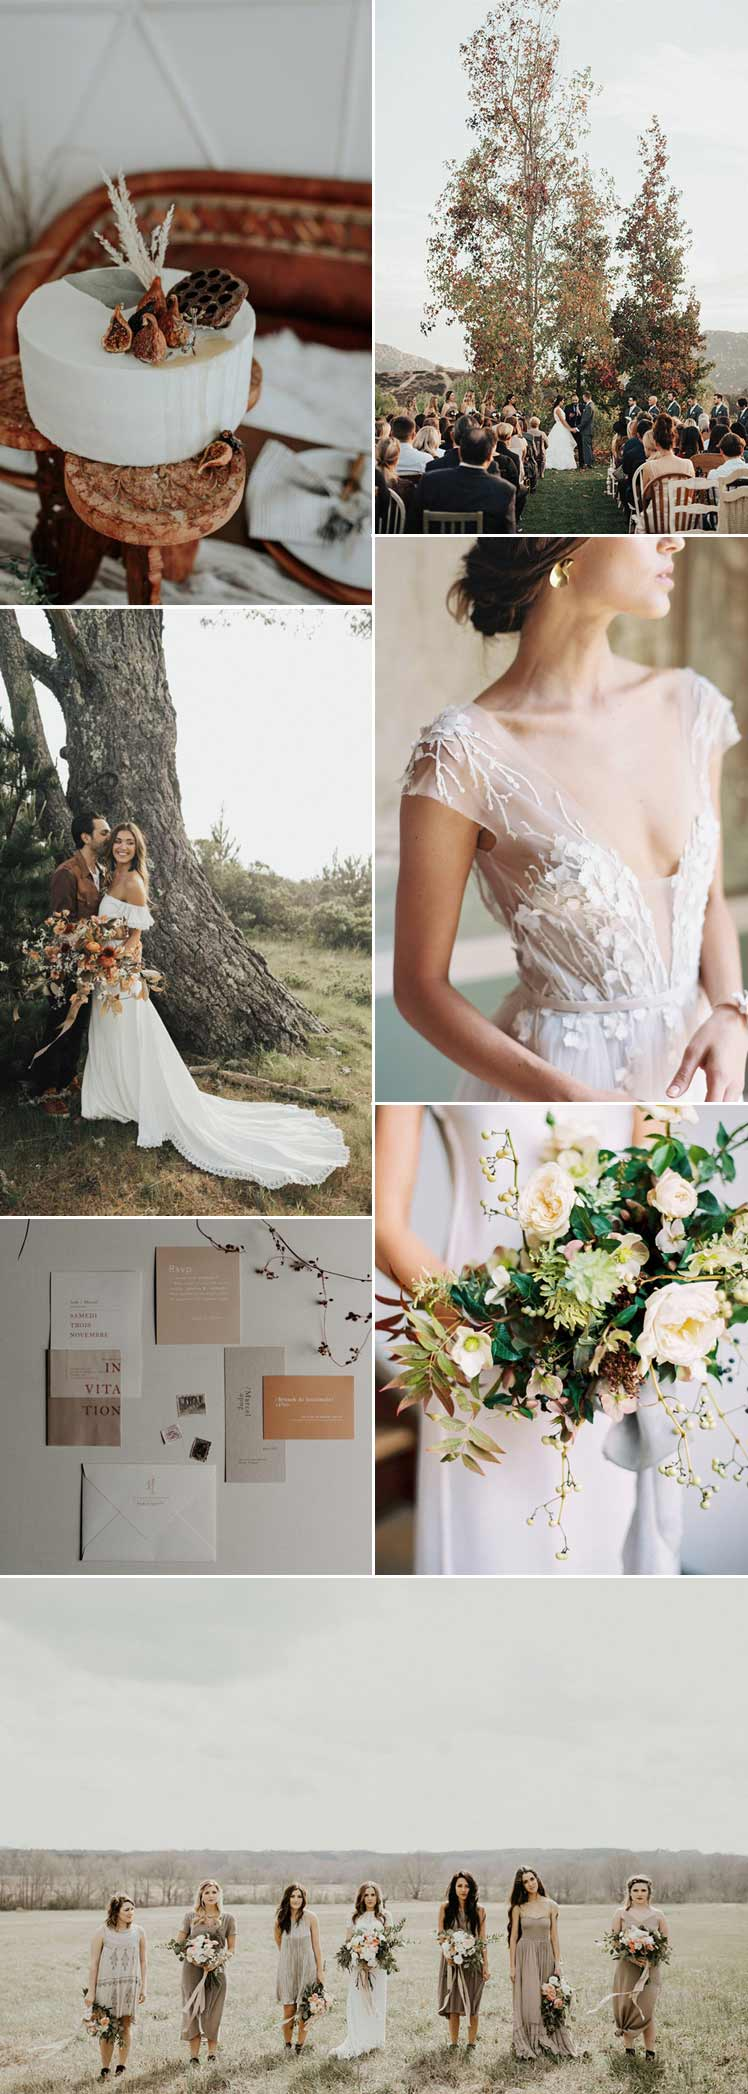 sage and beige for an Autumn wedding colour theme